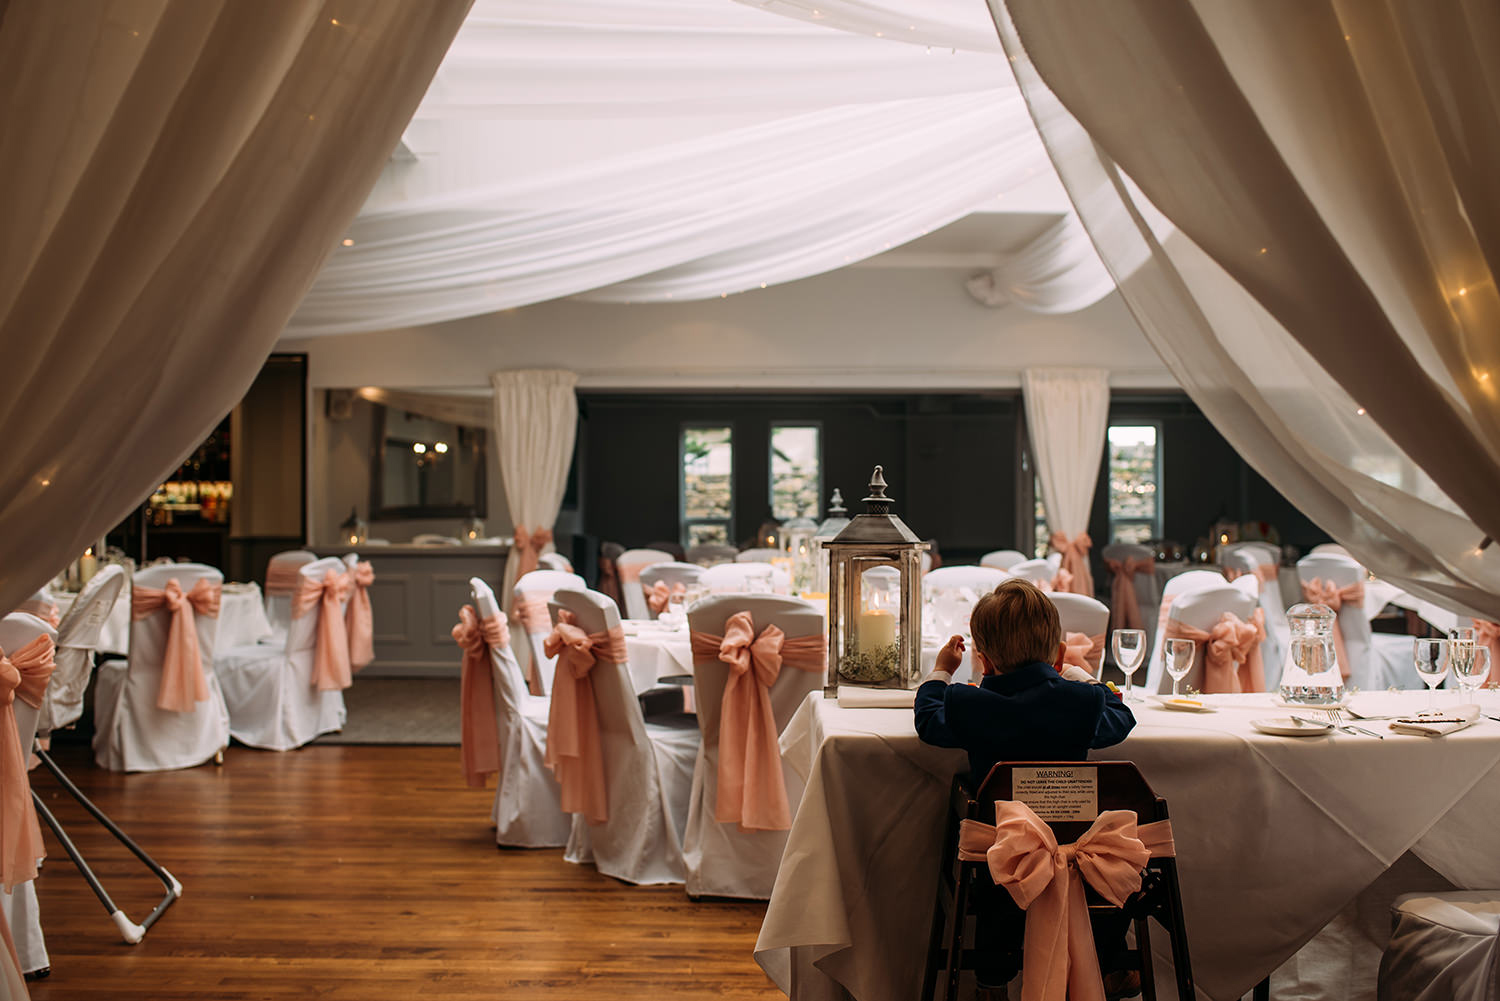 wedding breakfast room with little boy sat in his chair